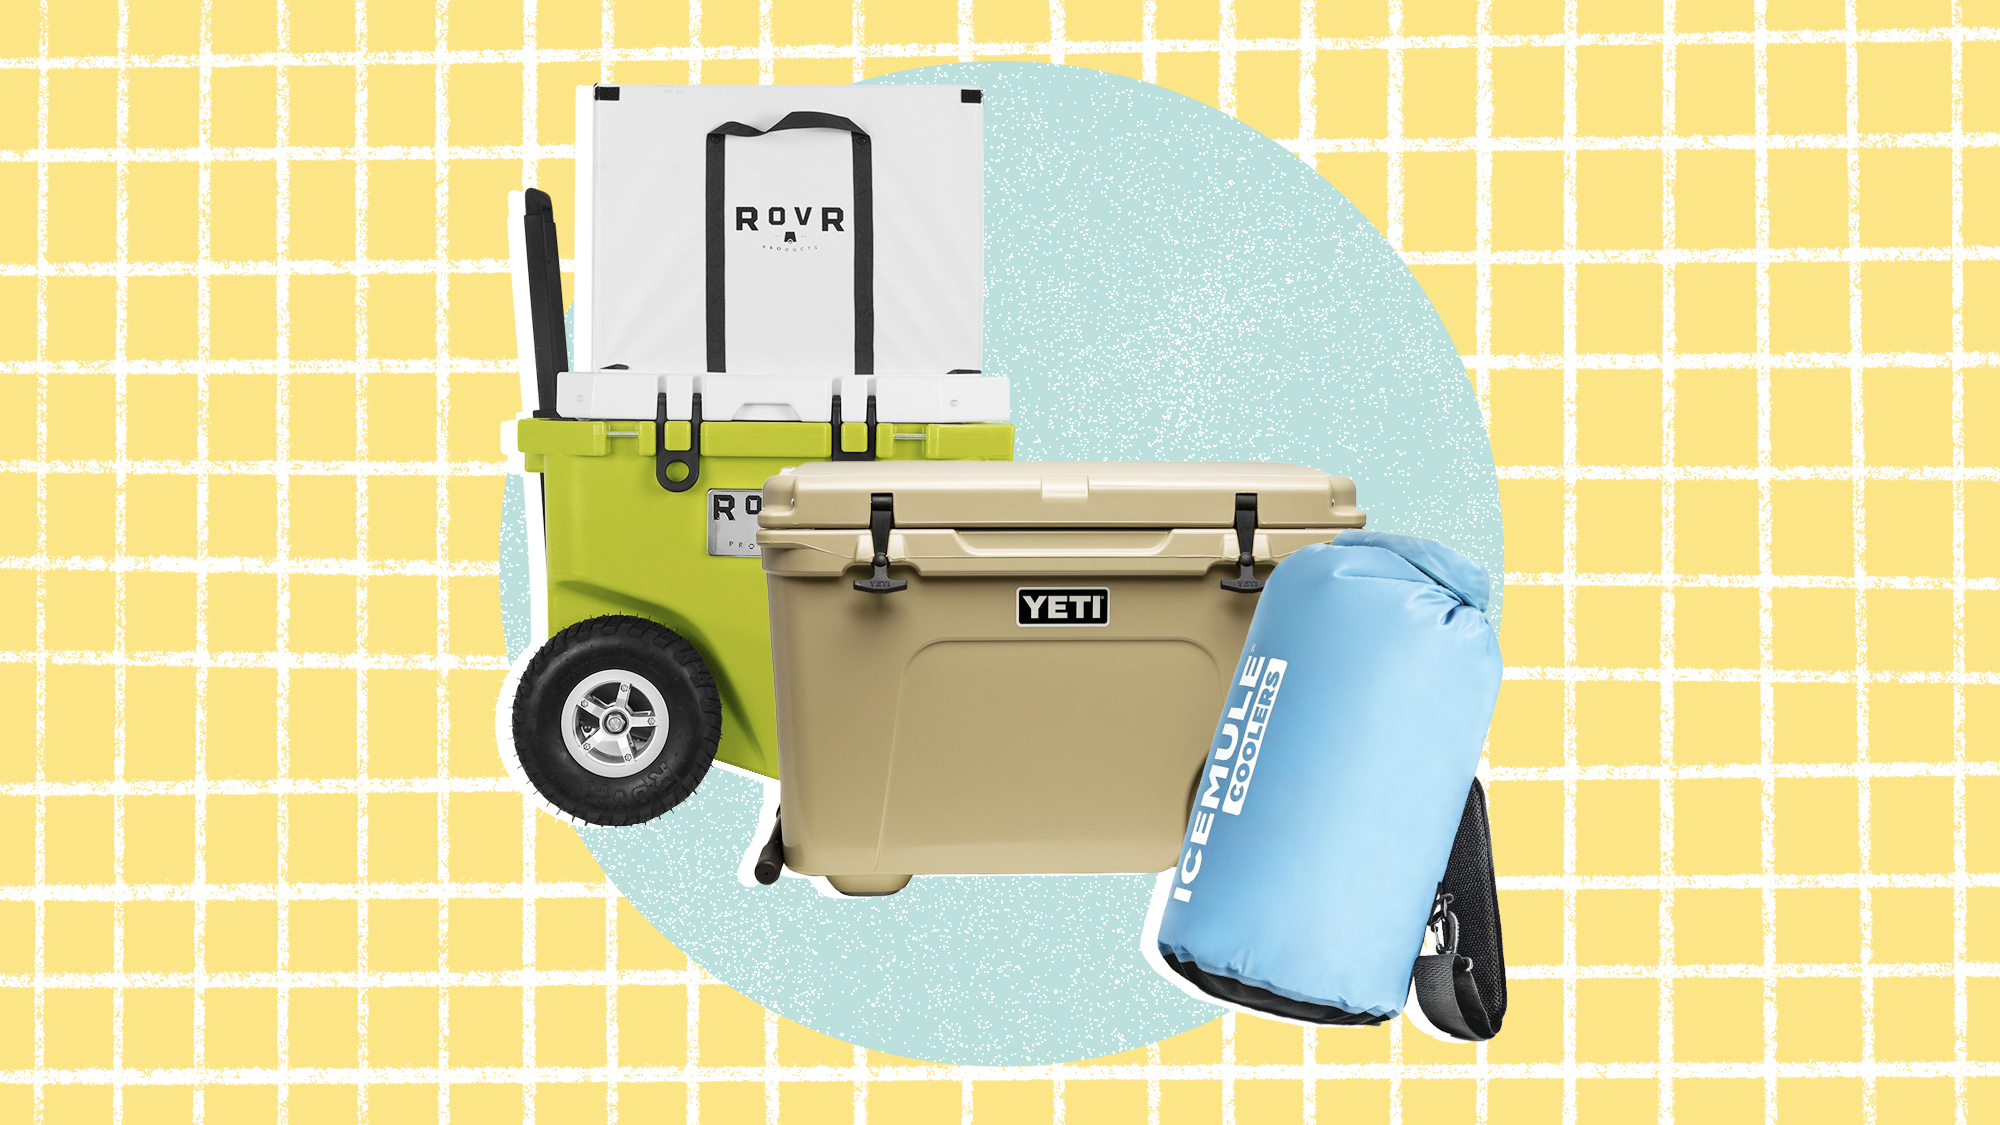 3 coolers on a designed background